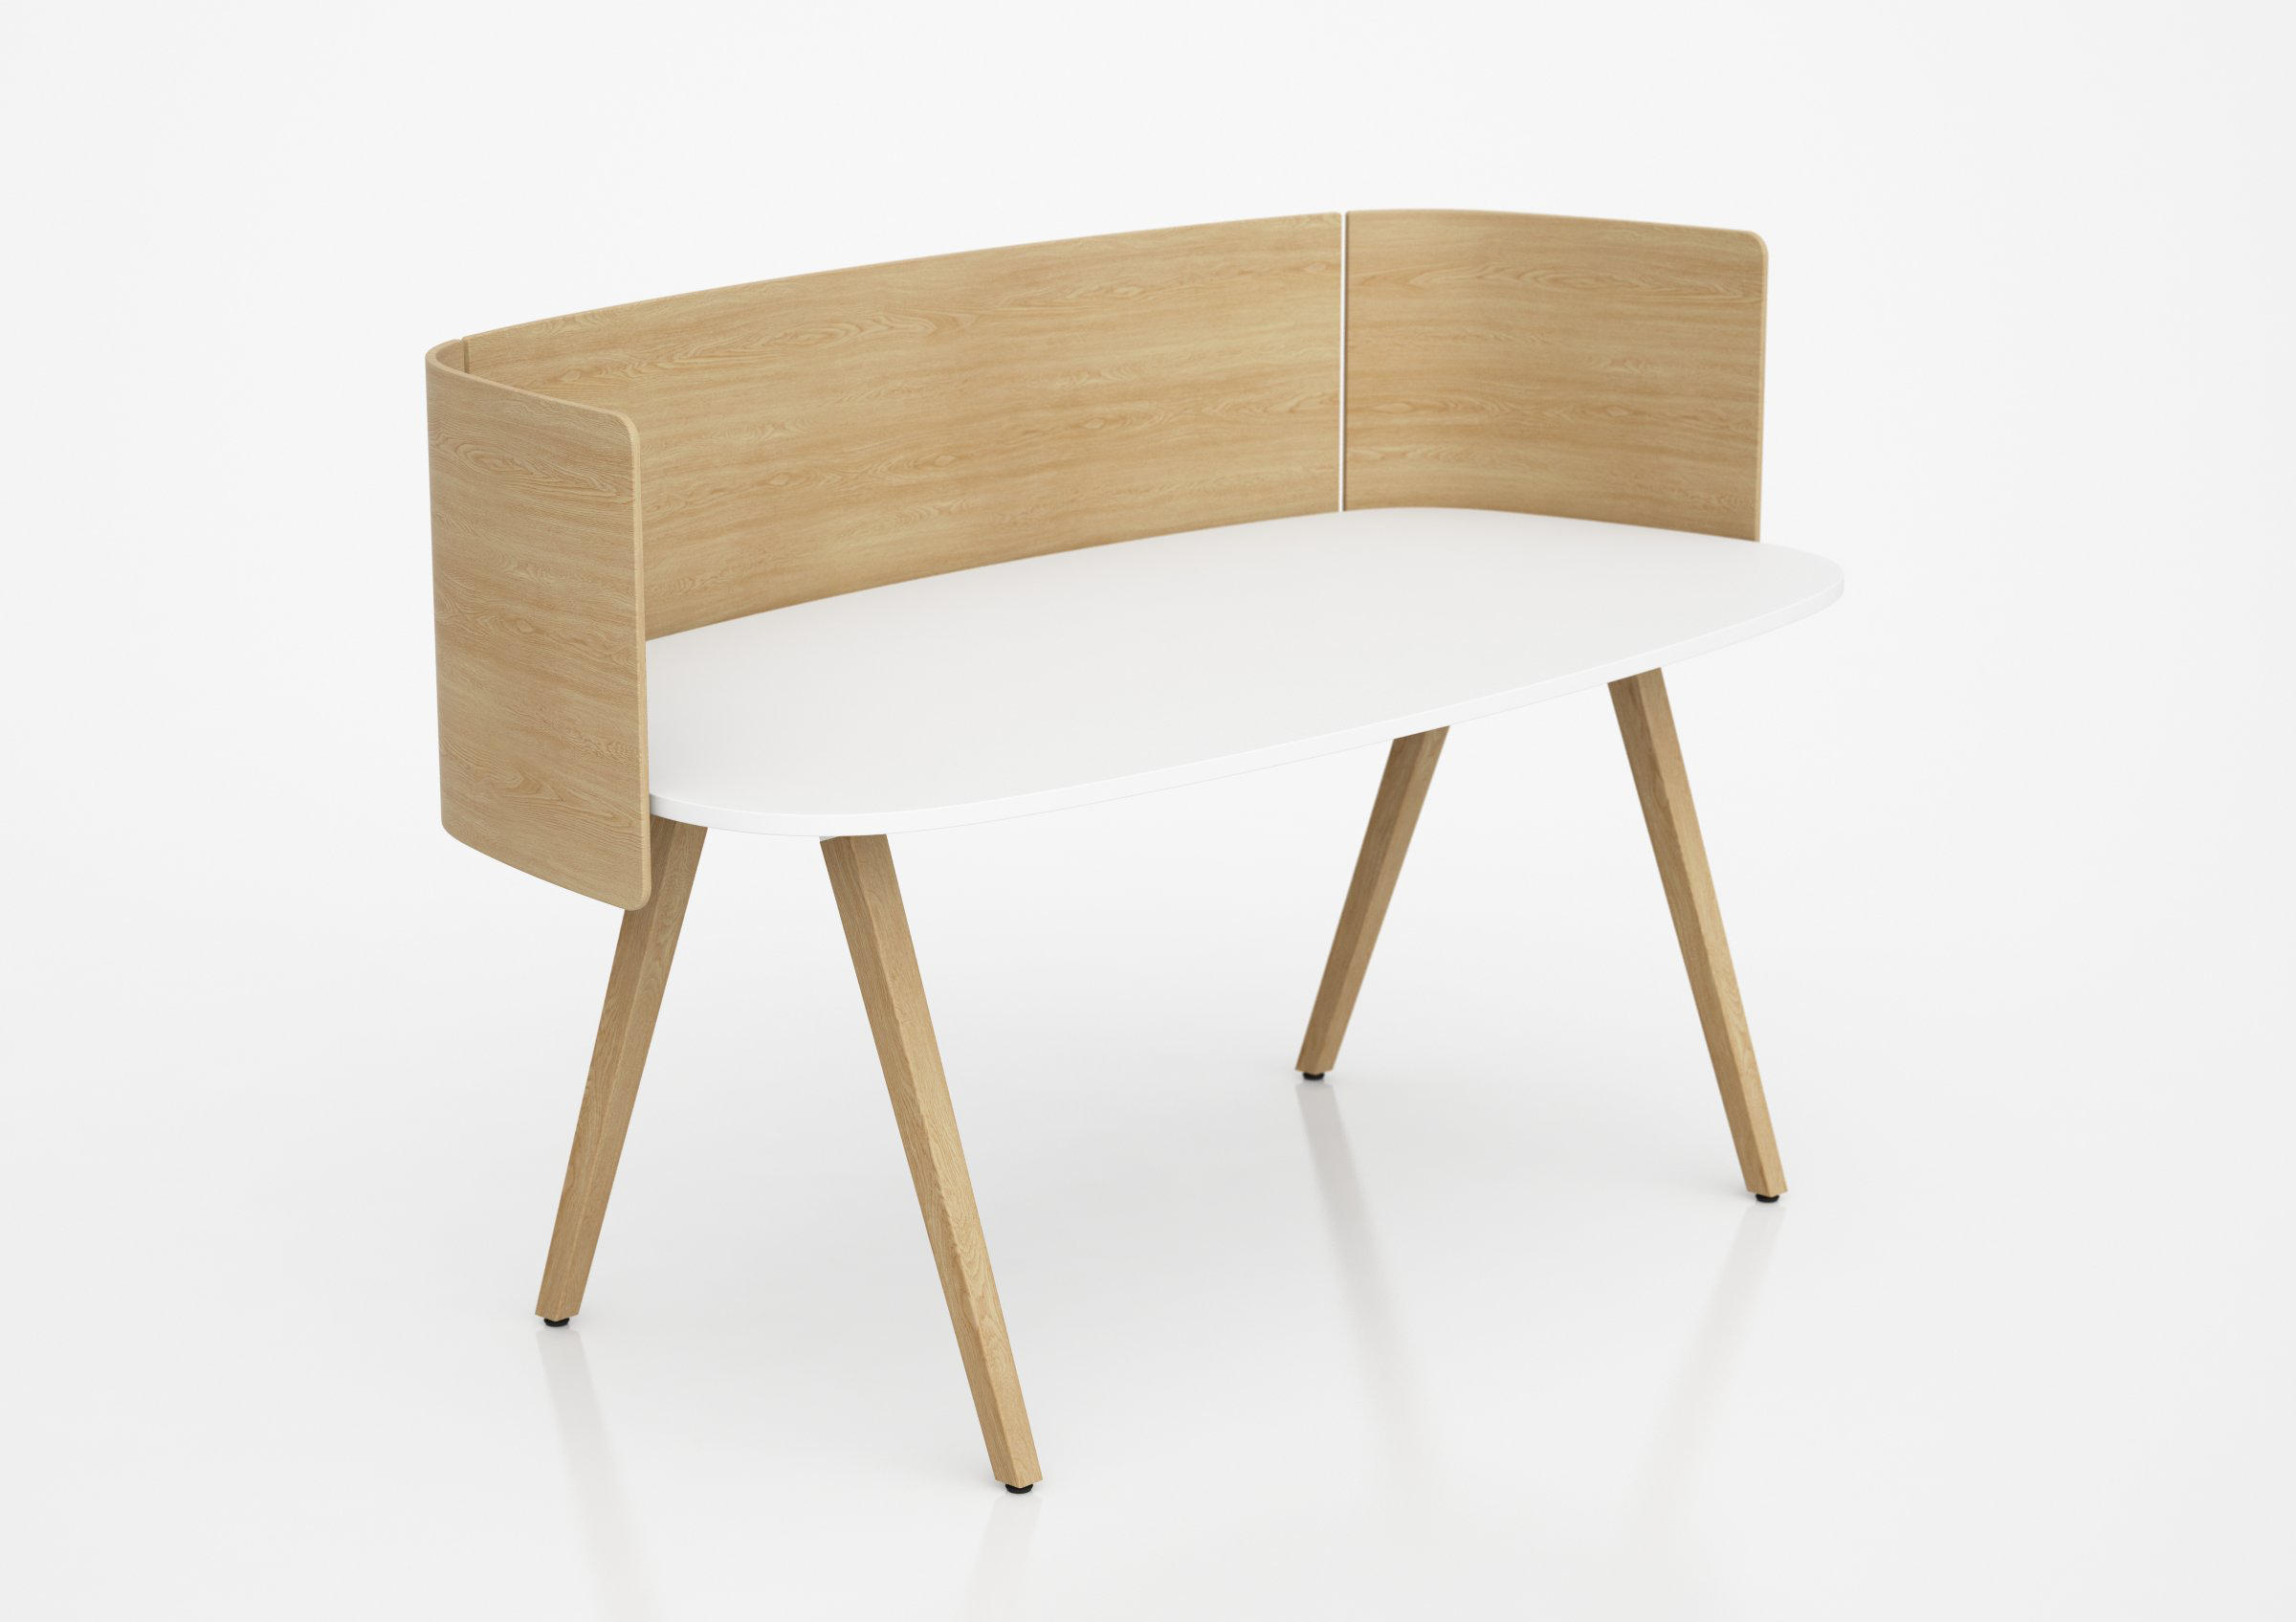 Wood Desk Up Screen Table Dividers From Glimakra Of